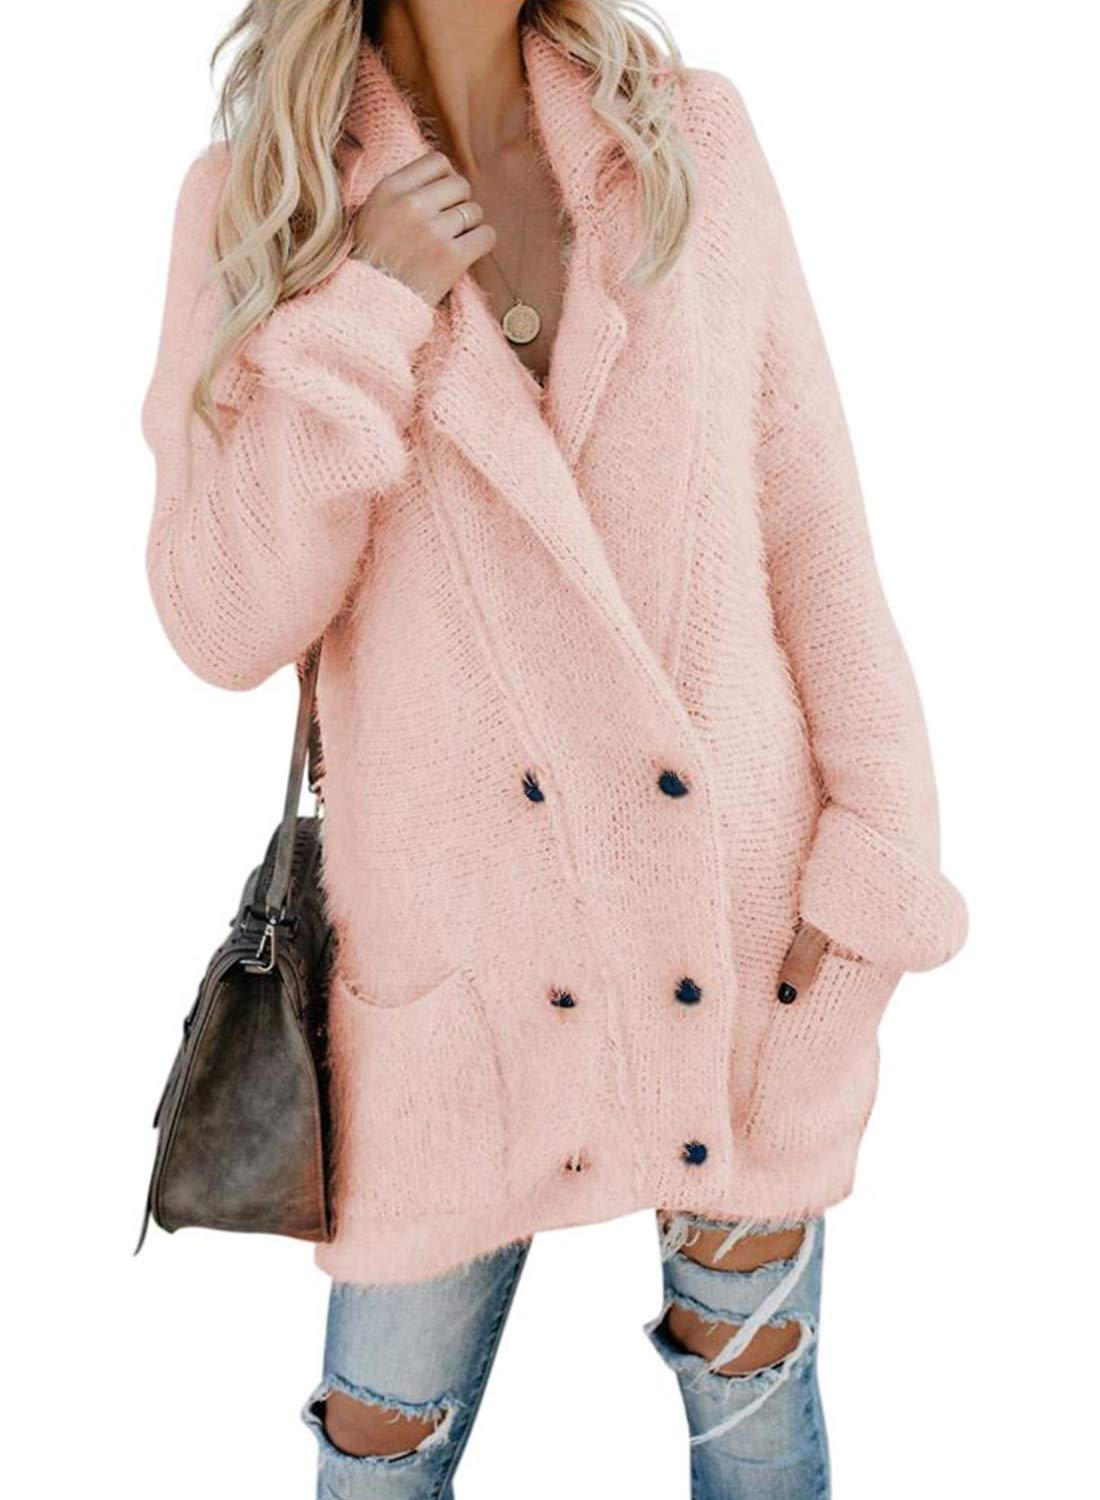 Asvivid Womens Cozy Open Front Fleece Sweater Cardigans Button Up Loose Ladies Soft Thick Winter Warm Coats Jacket M Pink by Asvivid